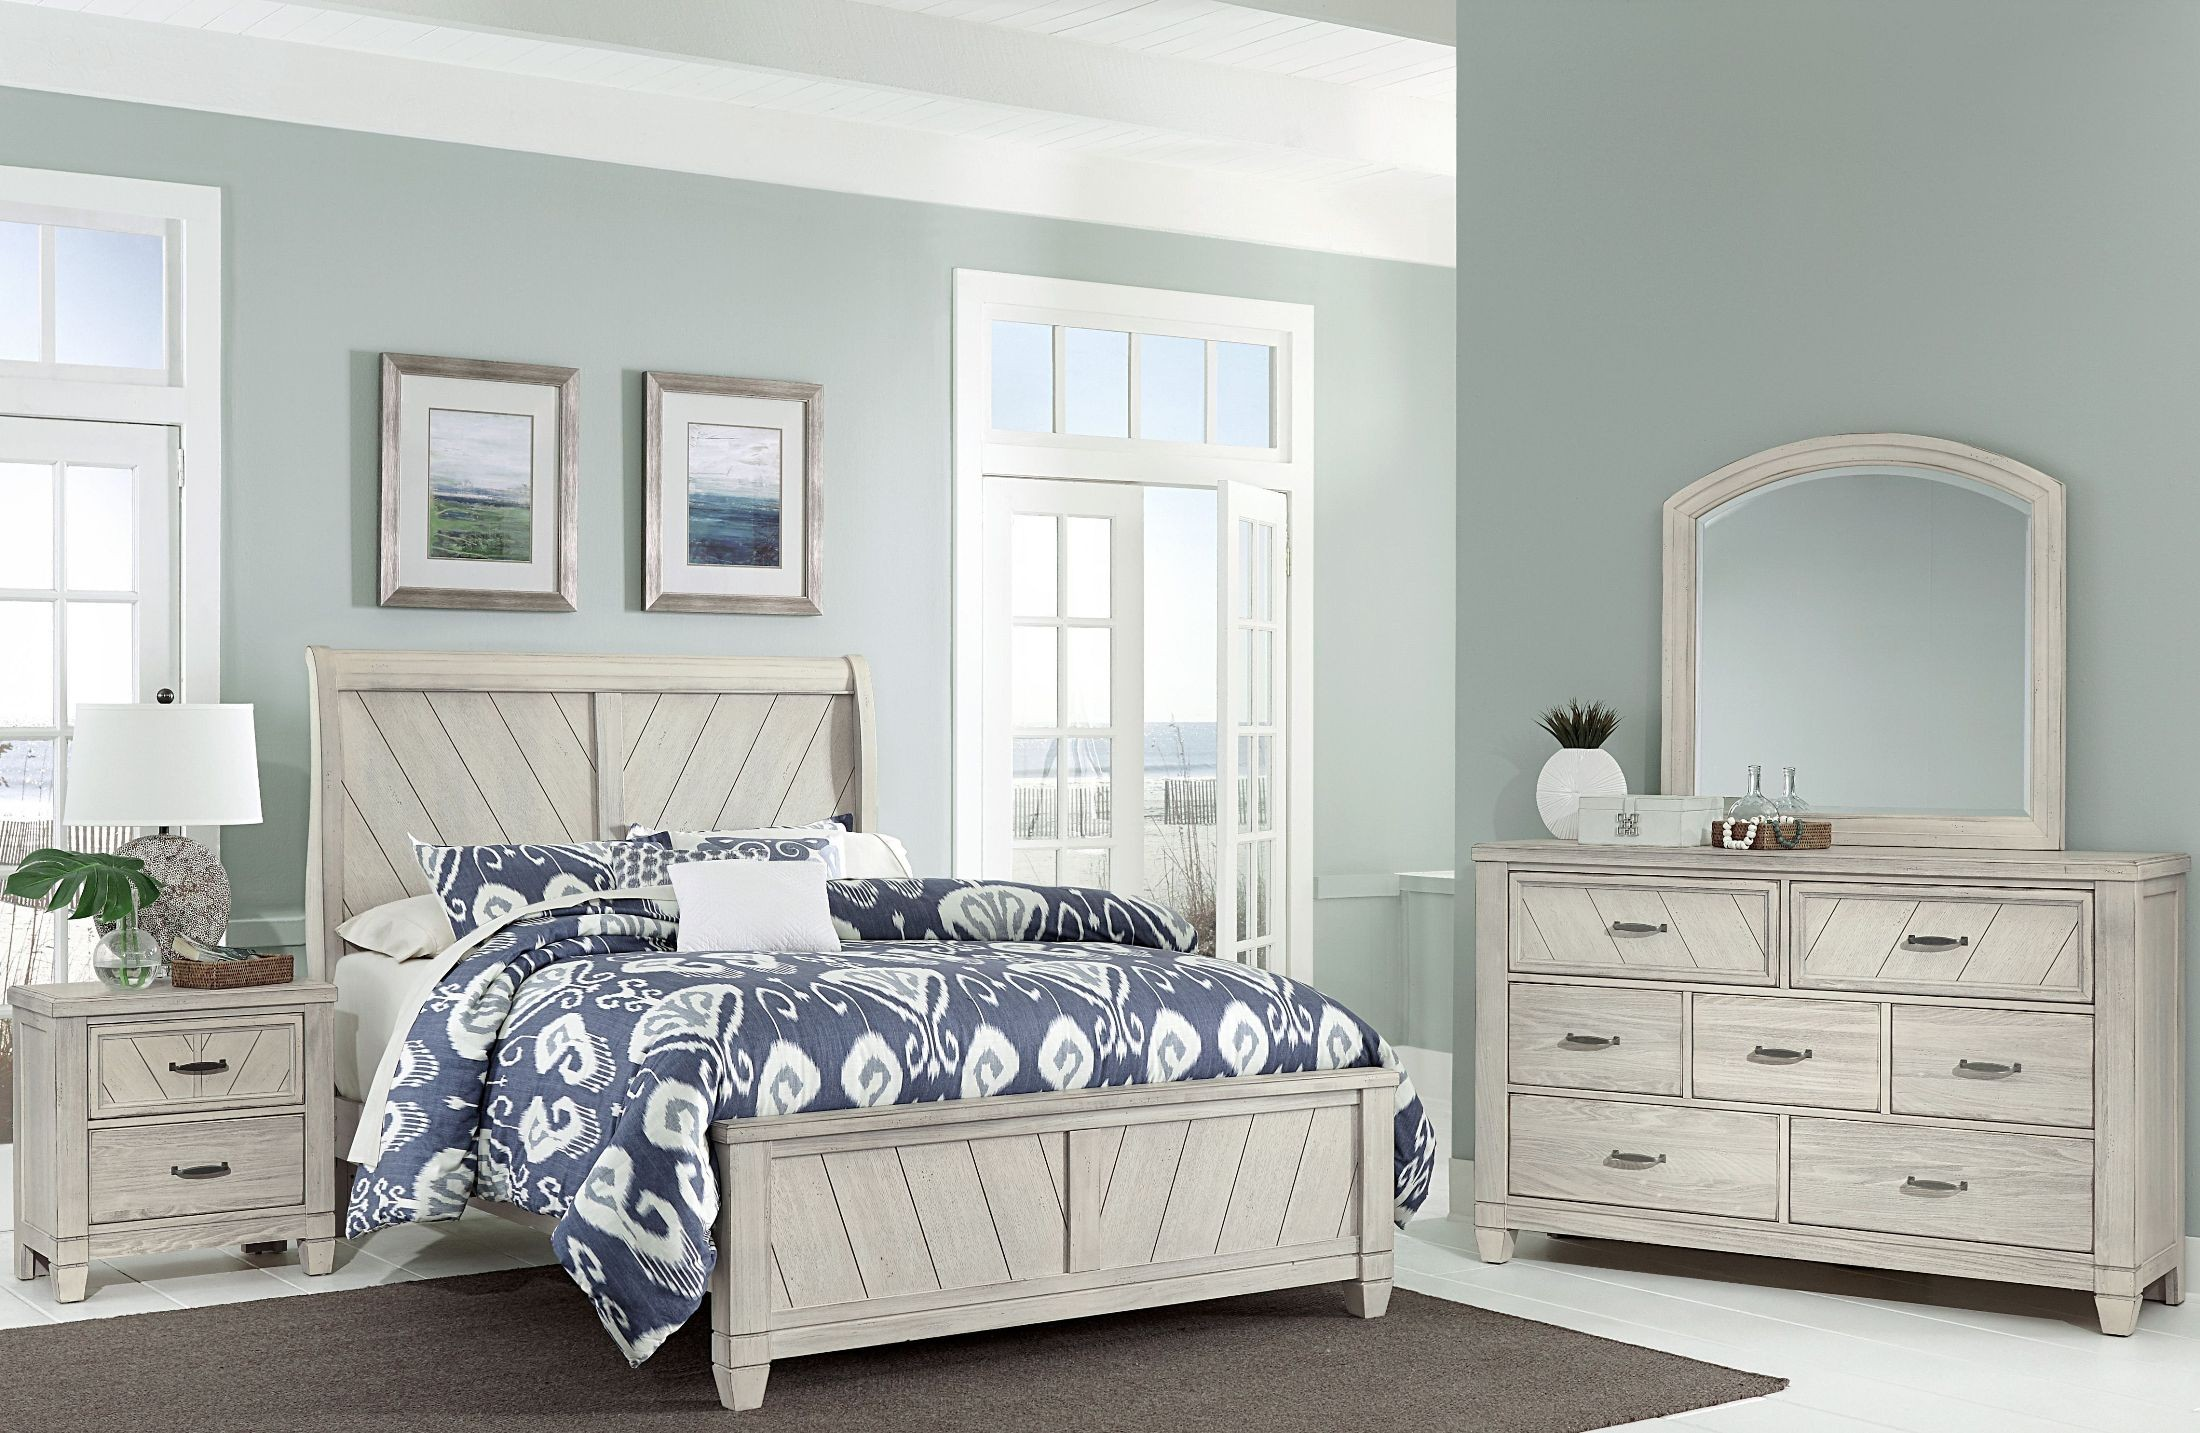 Rustic cottage rustic white sleigh bedroom set from virginia house coleman furniture for Bedroom furniture washington dc